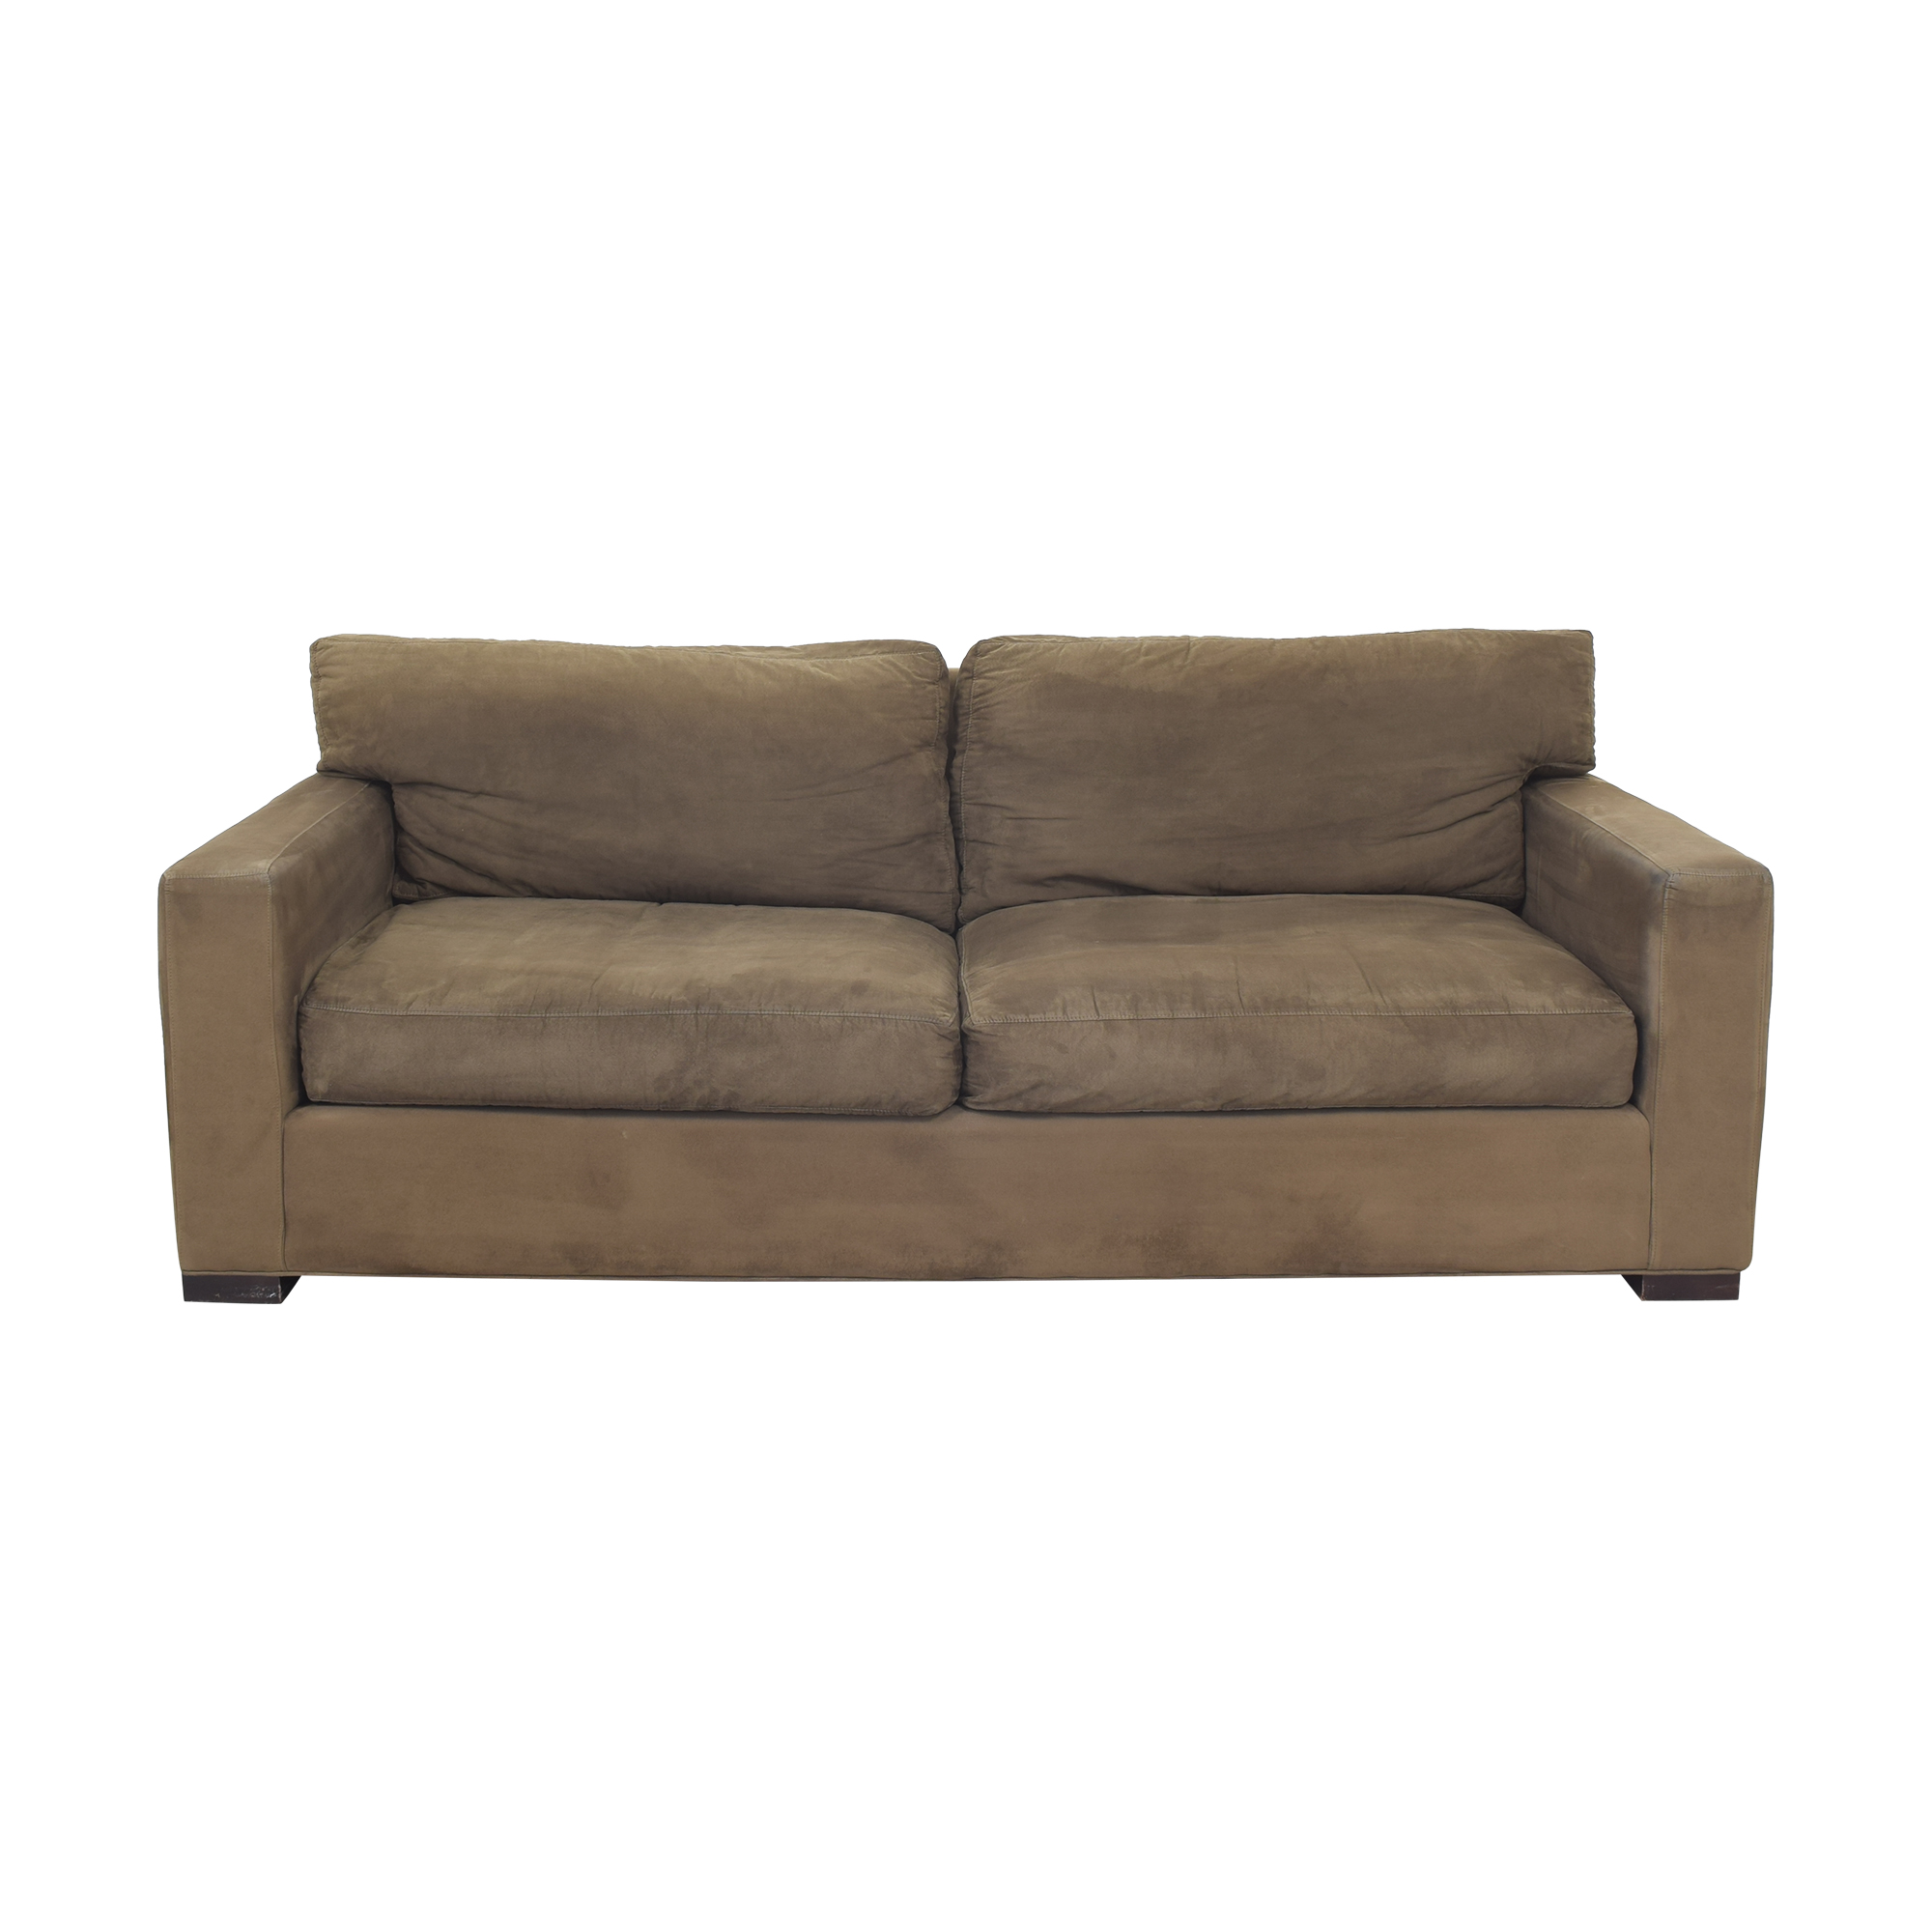 Crate & Barrel Axis II Two Cushion Sofa sale